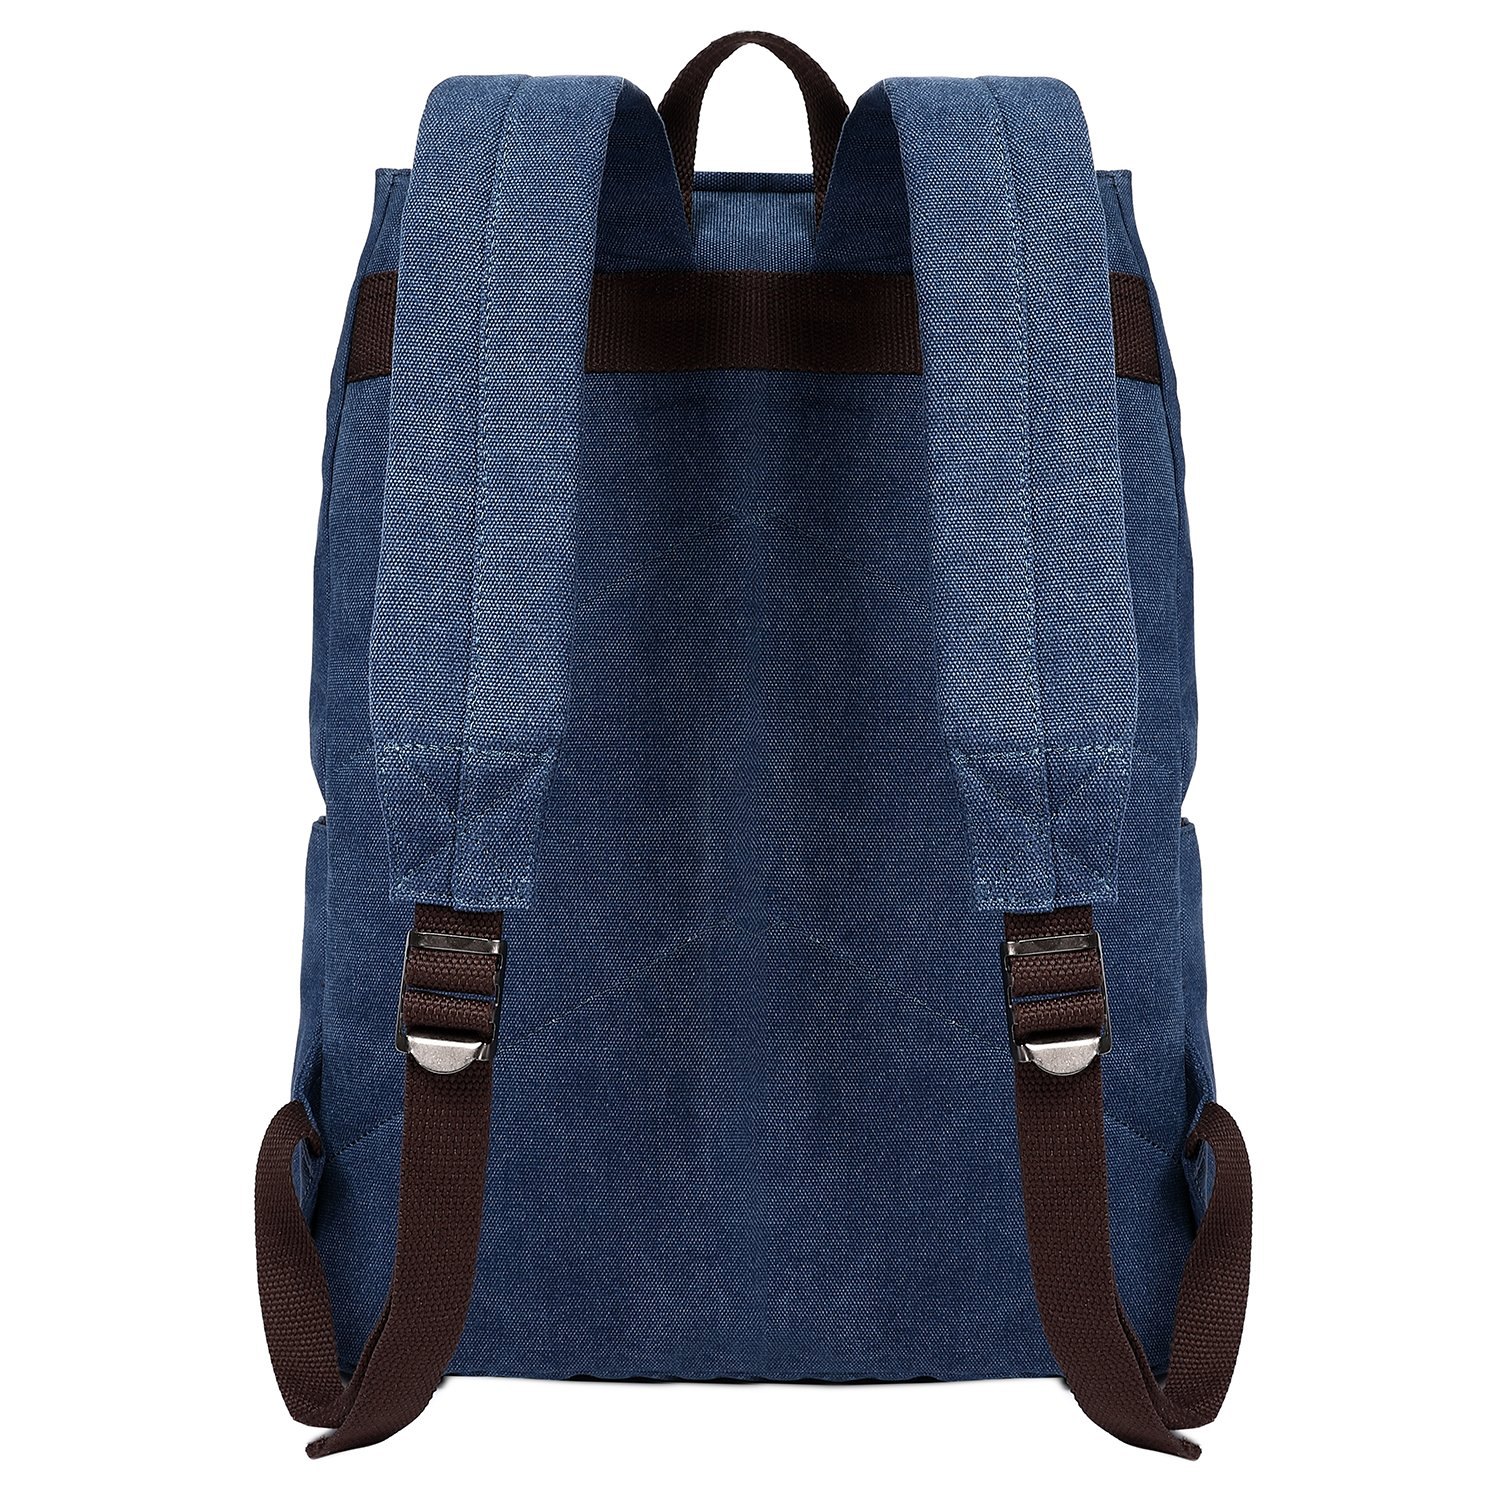 Fresion Vintage Casual Canvas Leather Shoulder Backpack Hiking Bags Travel Rucksack Handbag with 18L Large Capacity for Men and Women, Blue